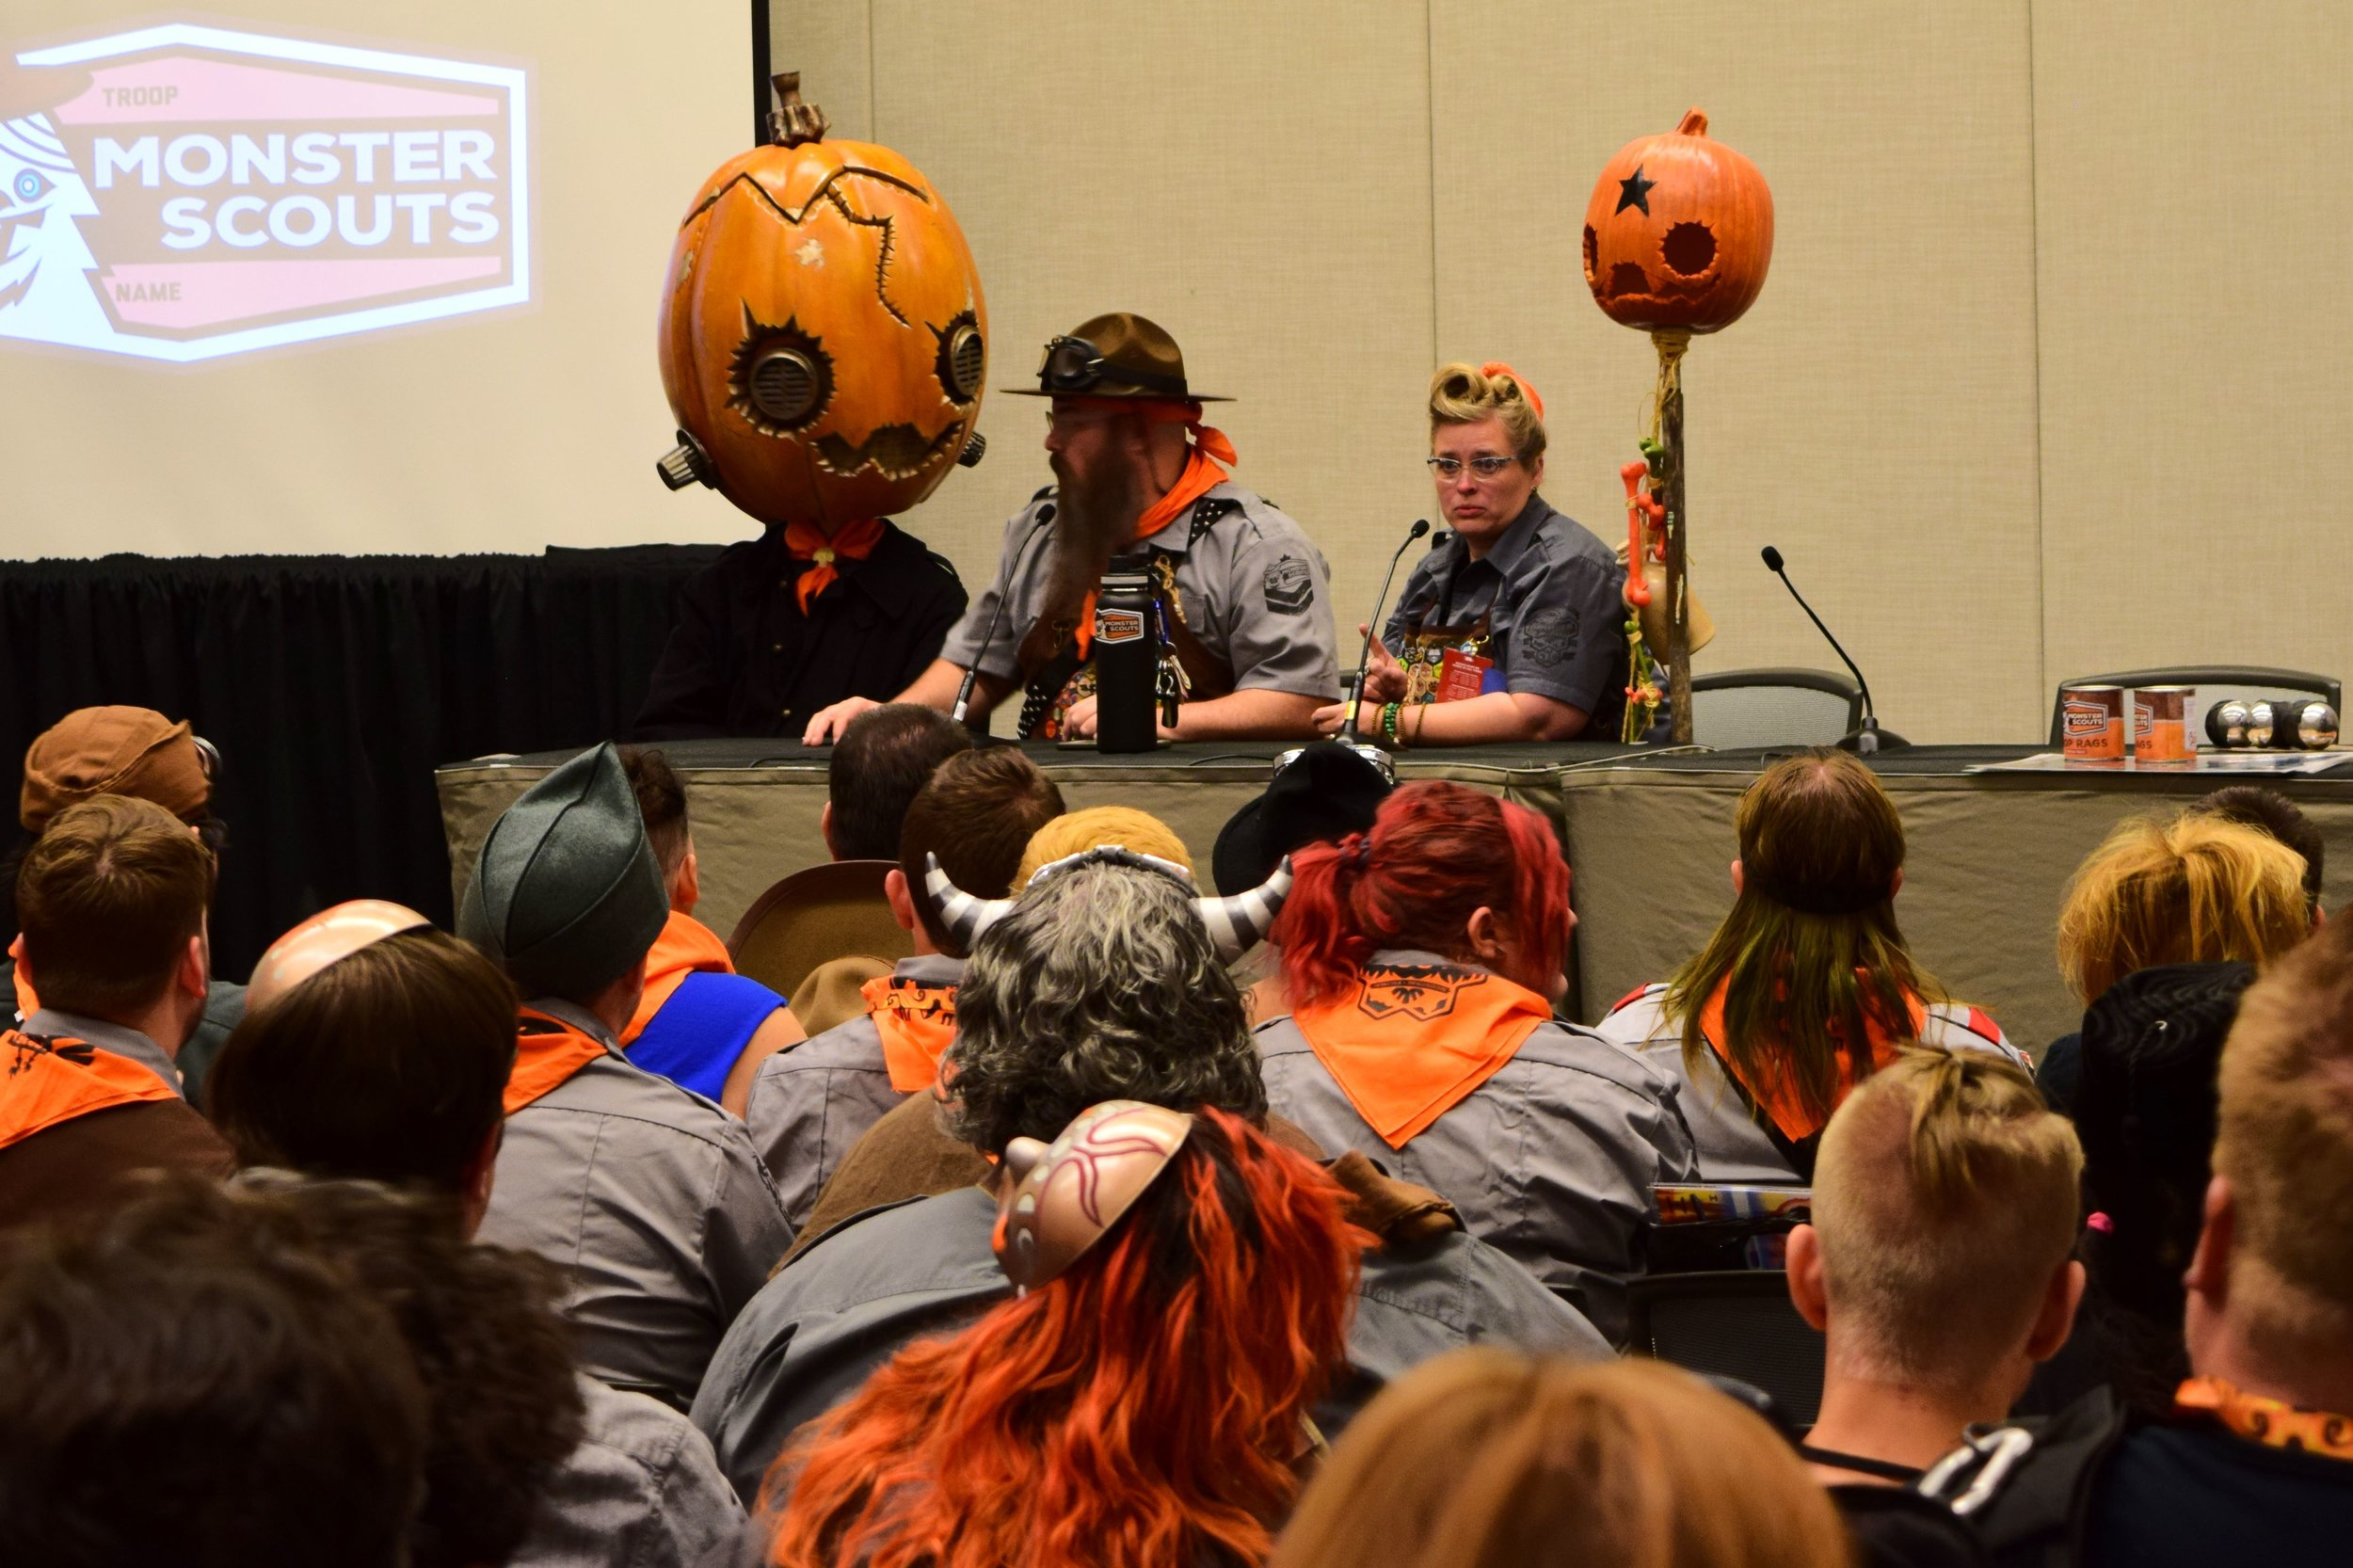 The Monster Scouts Rally at Phoenix Comic Con 2017. (2)